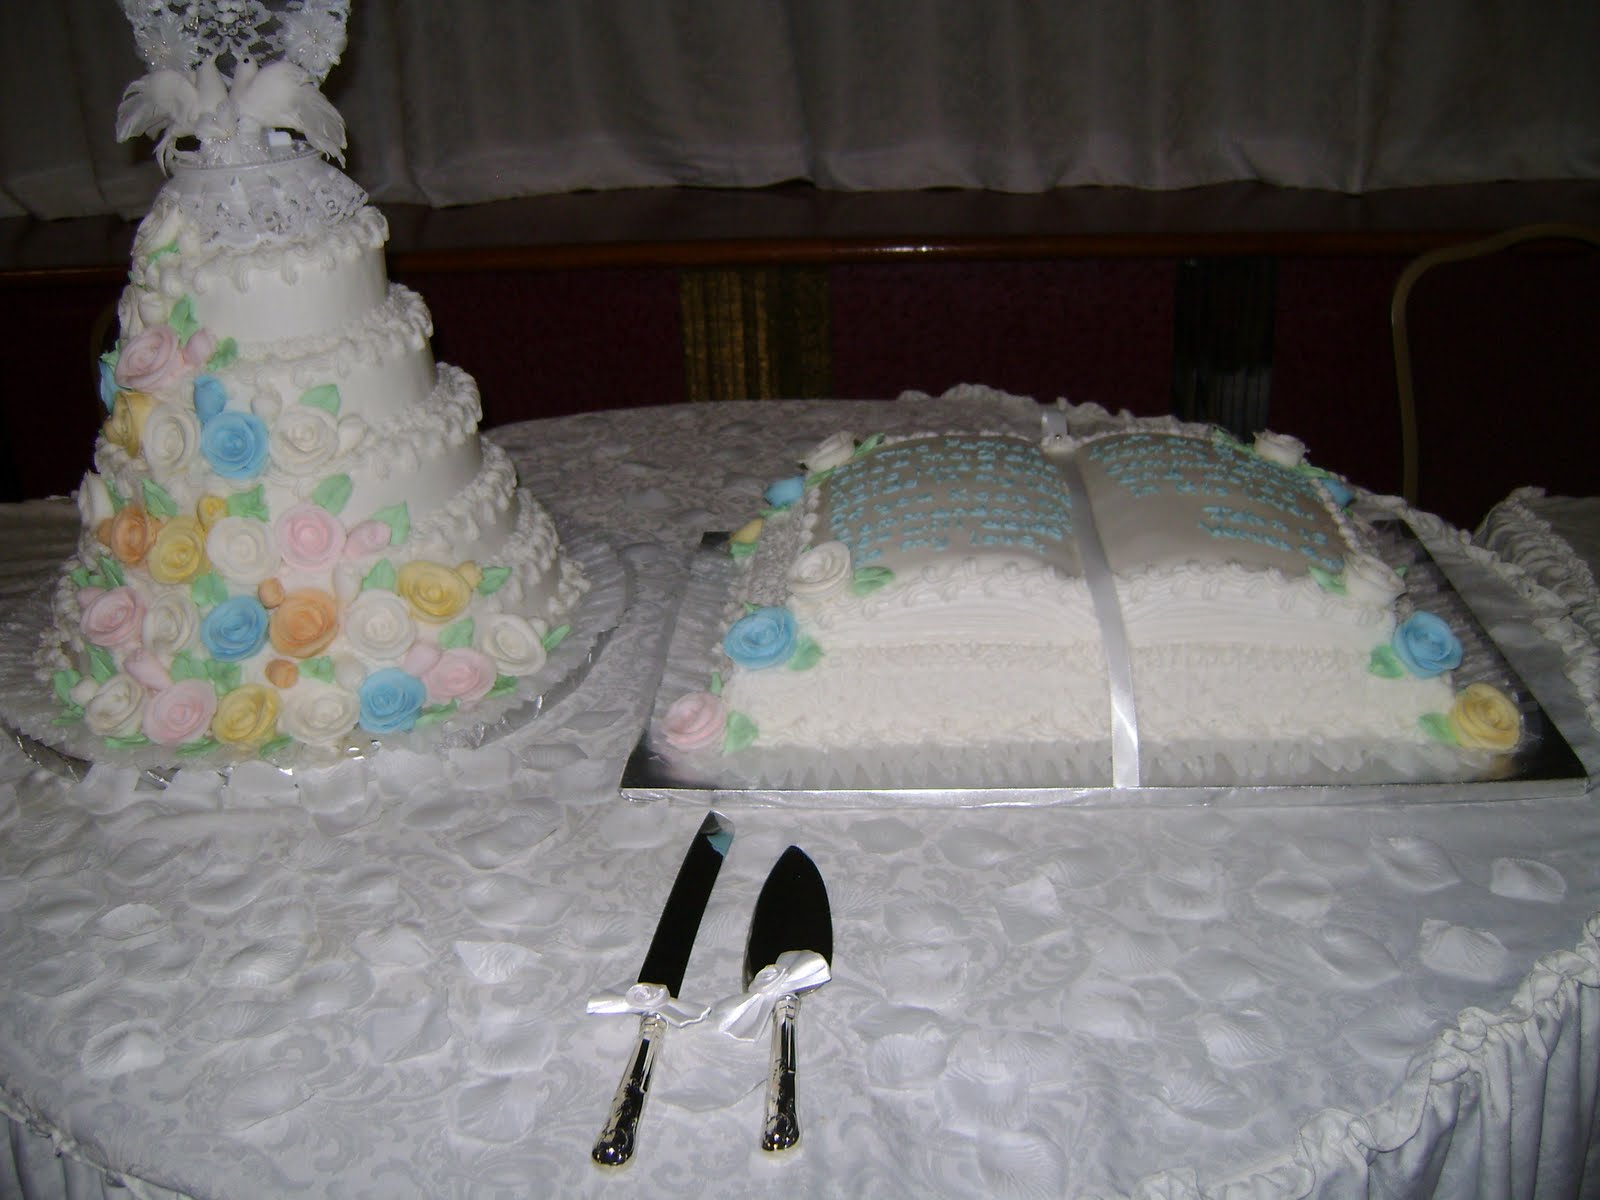 Bible Shaped Cake http://hawaiidermatology.com/bible/bible-shaped-wedding-cake.htm